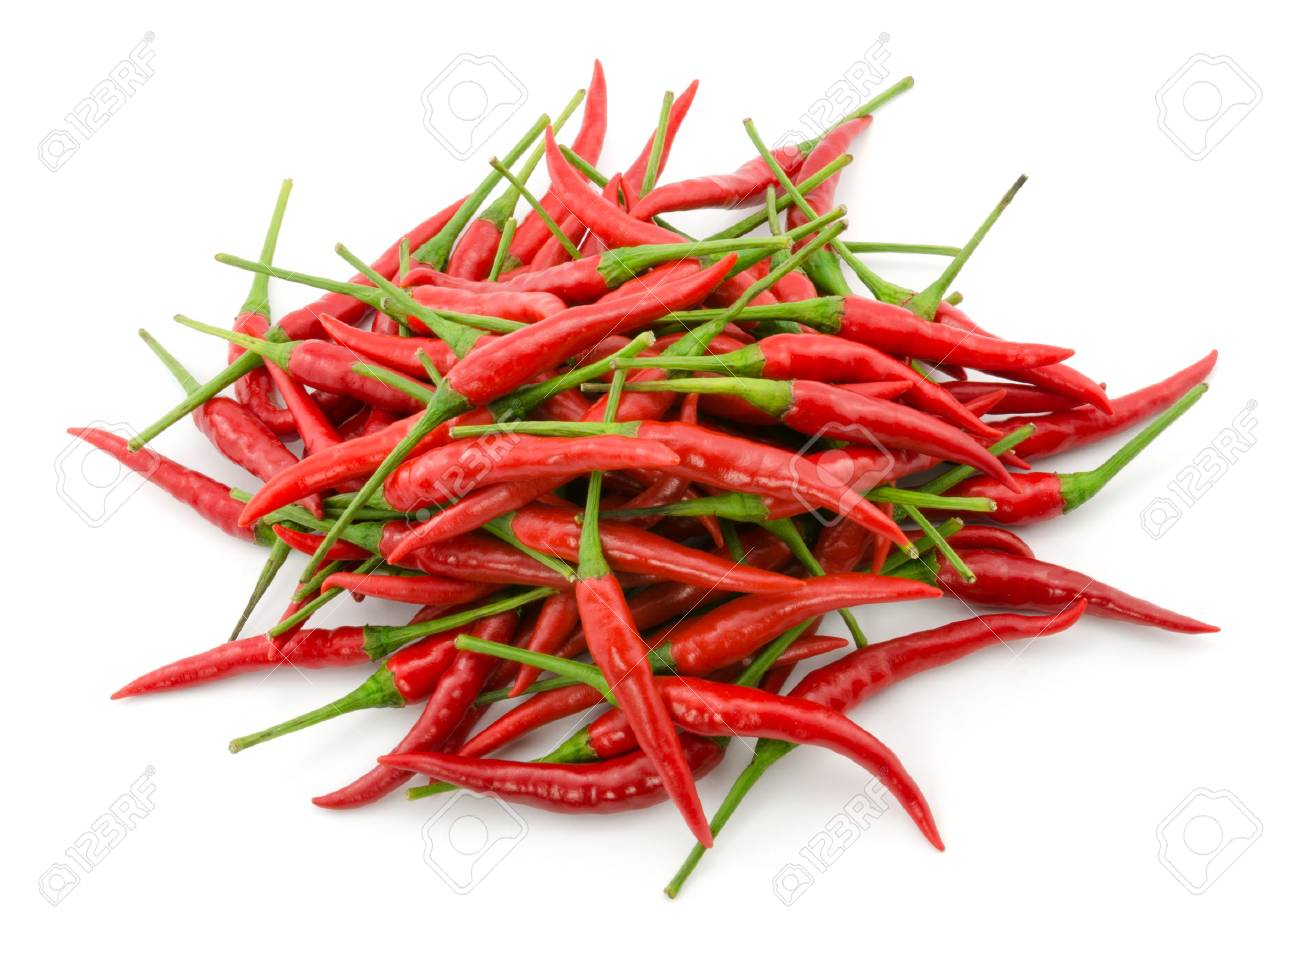 82361884-stack-of-hot-chili-pepper-or-small-chili-padi-isolated-on-white-background